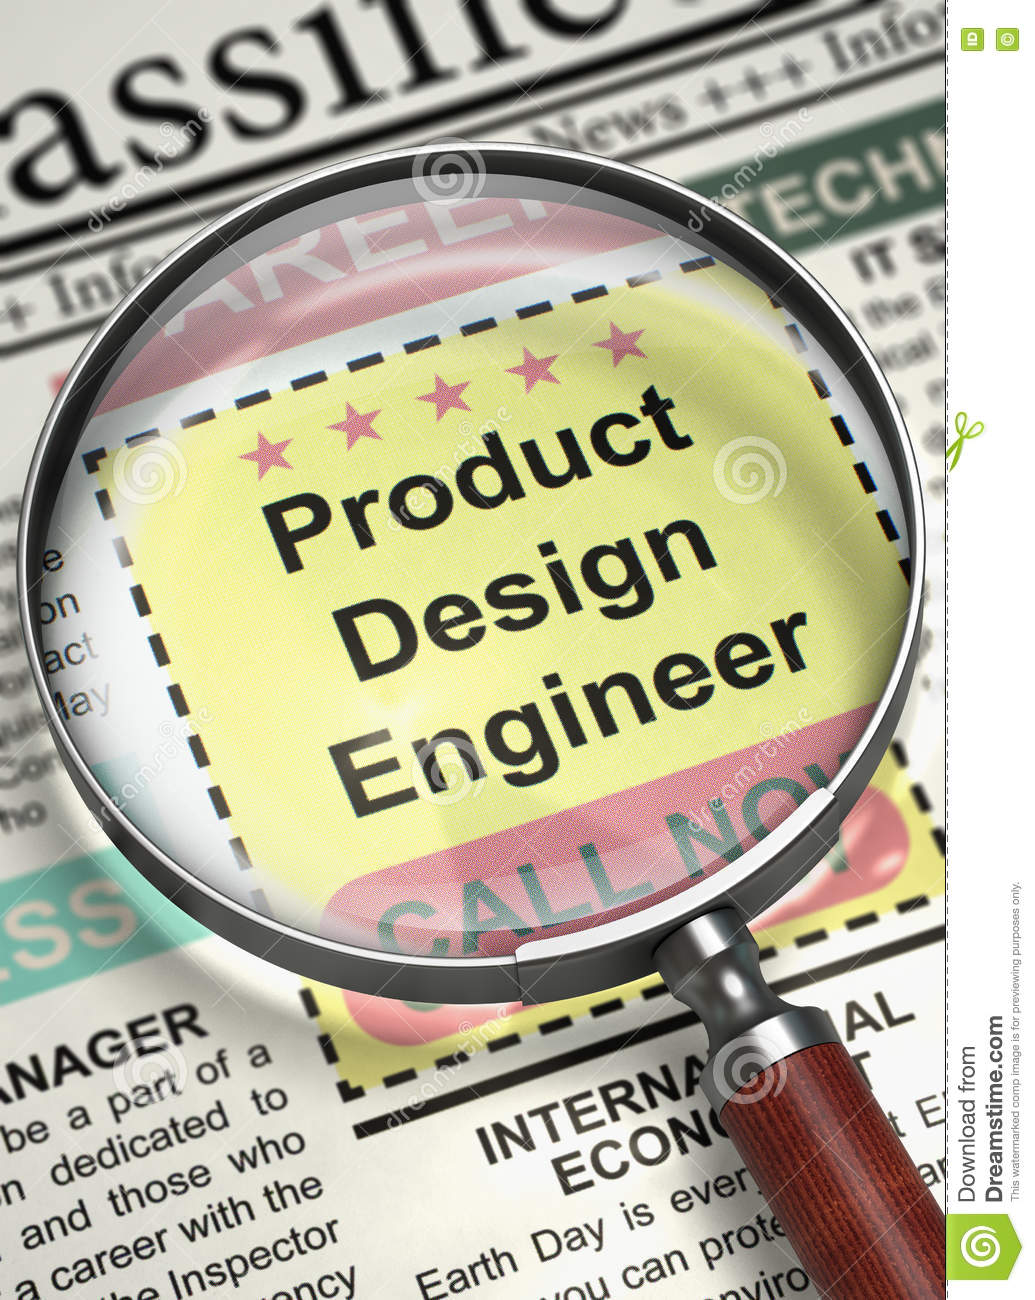 We Are Hiring Product Design Engineer 3d Stock Photo Image Of Business Profession 78781812